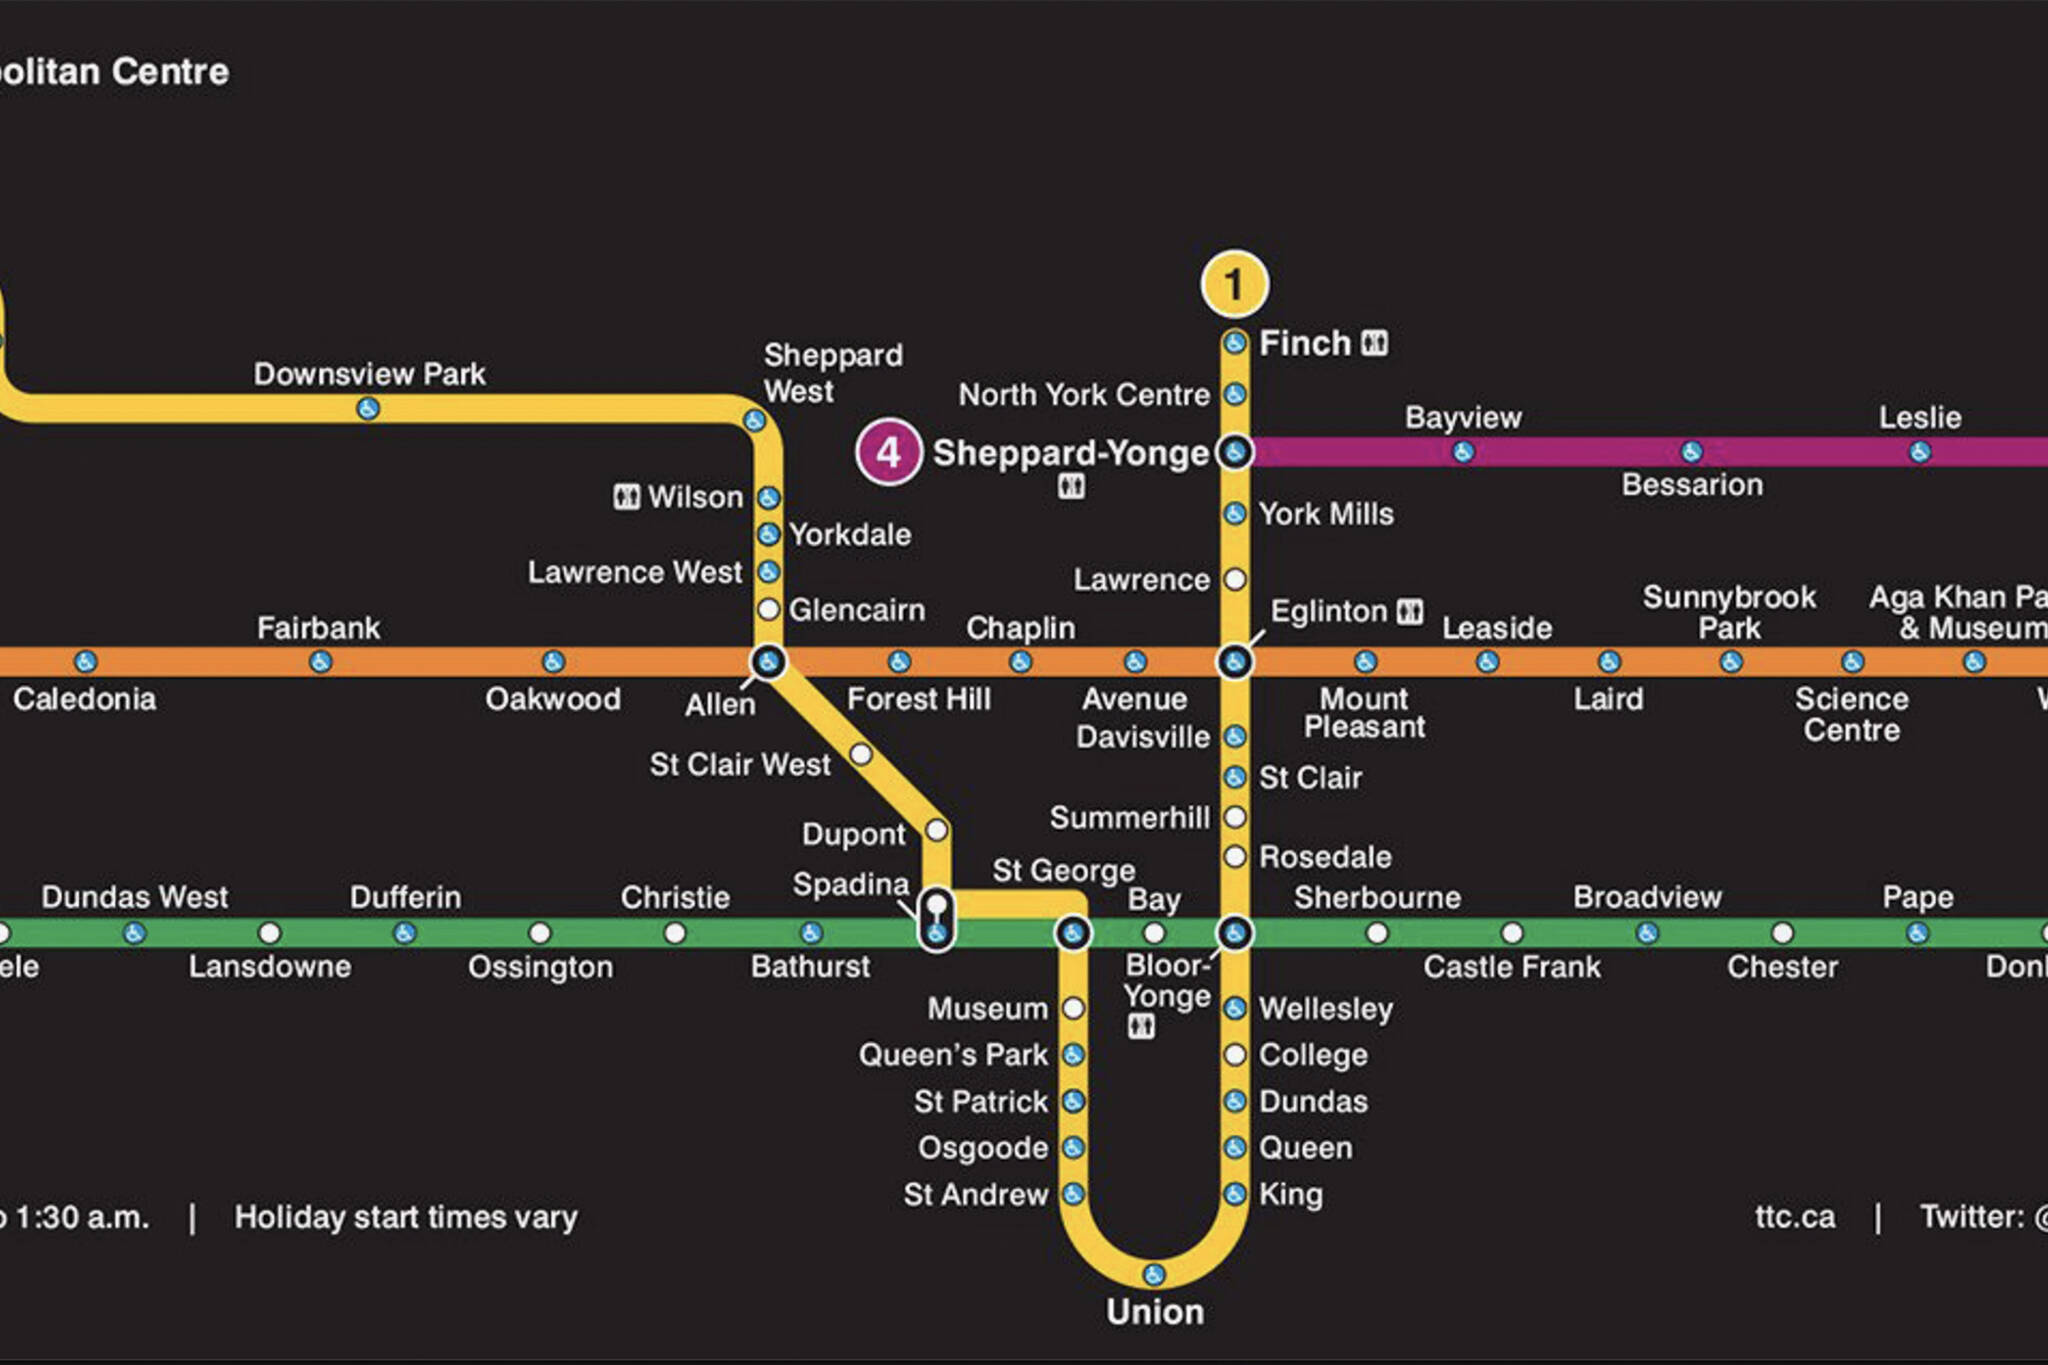 Toronto Subway Stations Map.This Is What The Ttc Subway Map Will Look Like In 2021